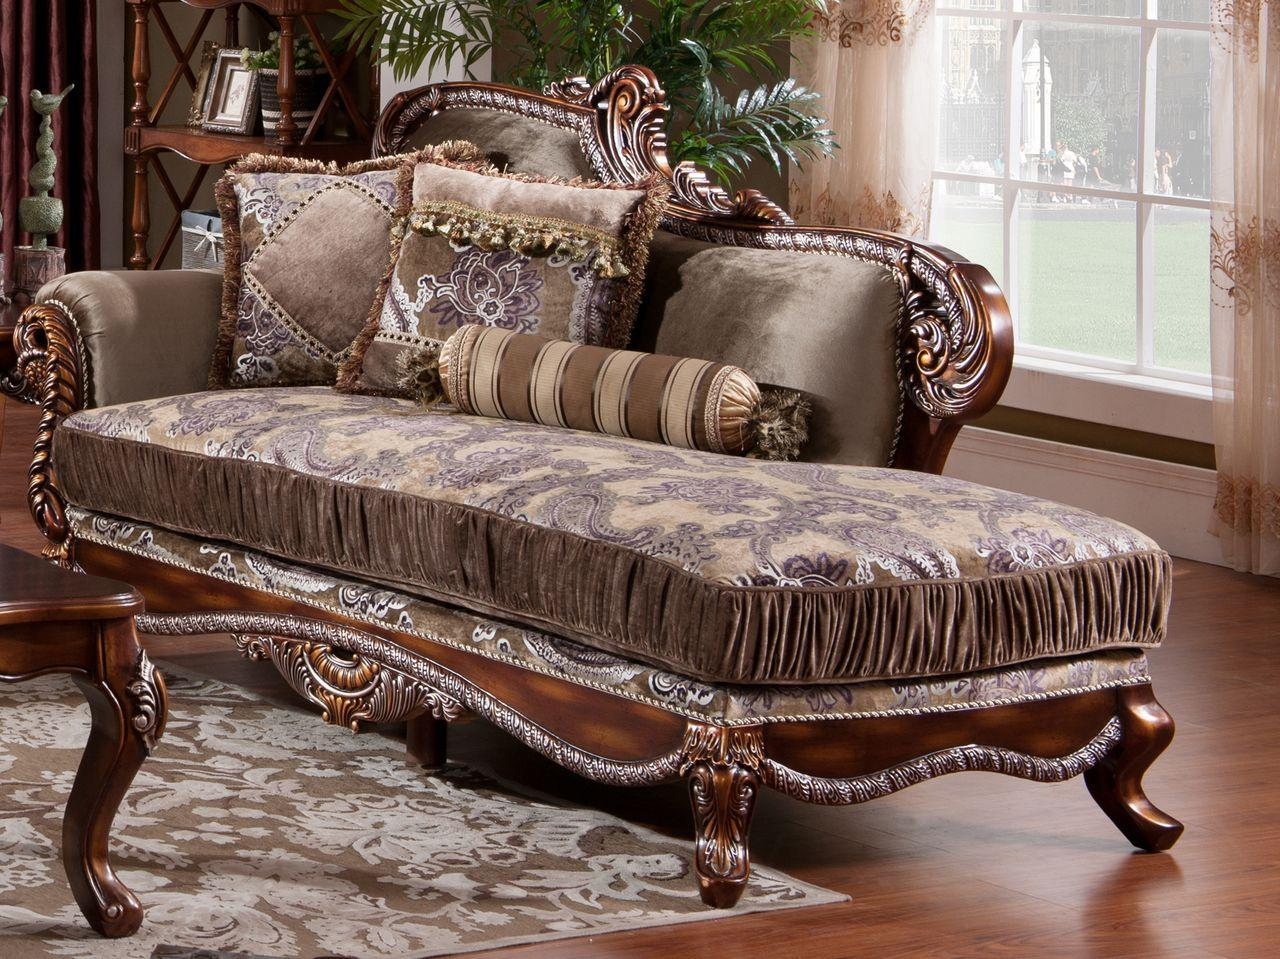 Traditional Cherry Fabric and Fabric, Wood Chaise 1 pcs Janet by Cosmos Furniture